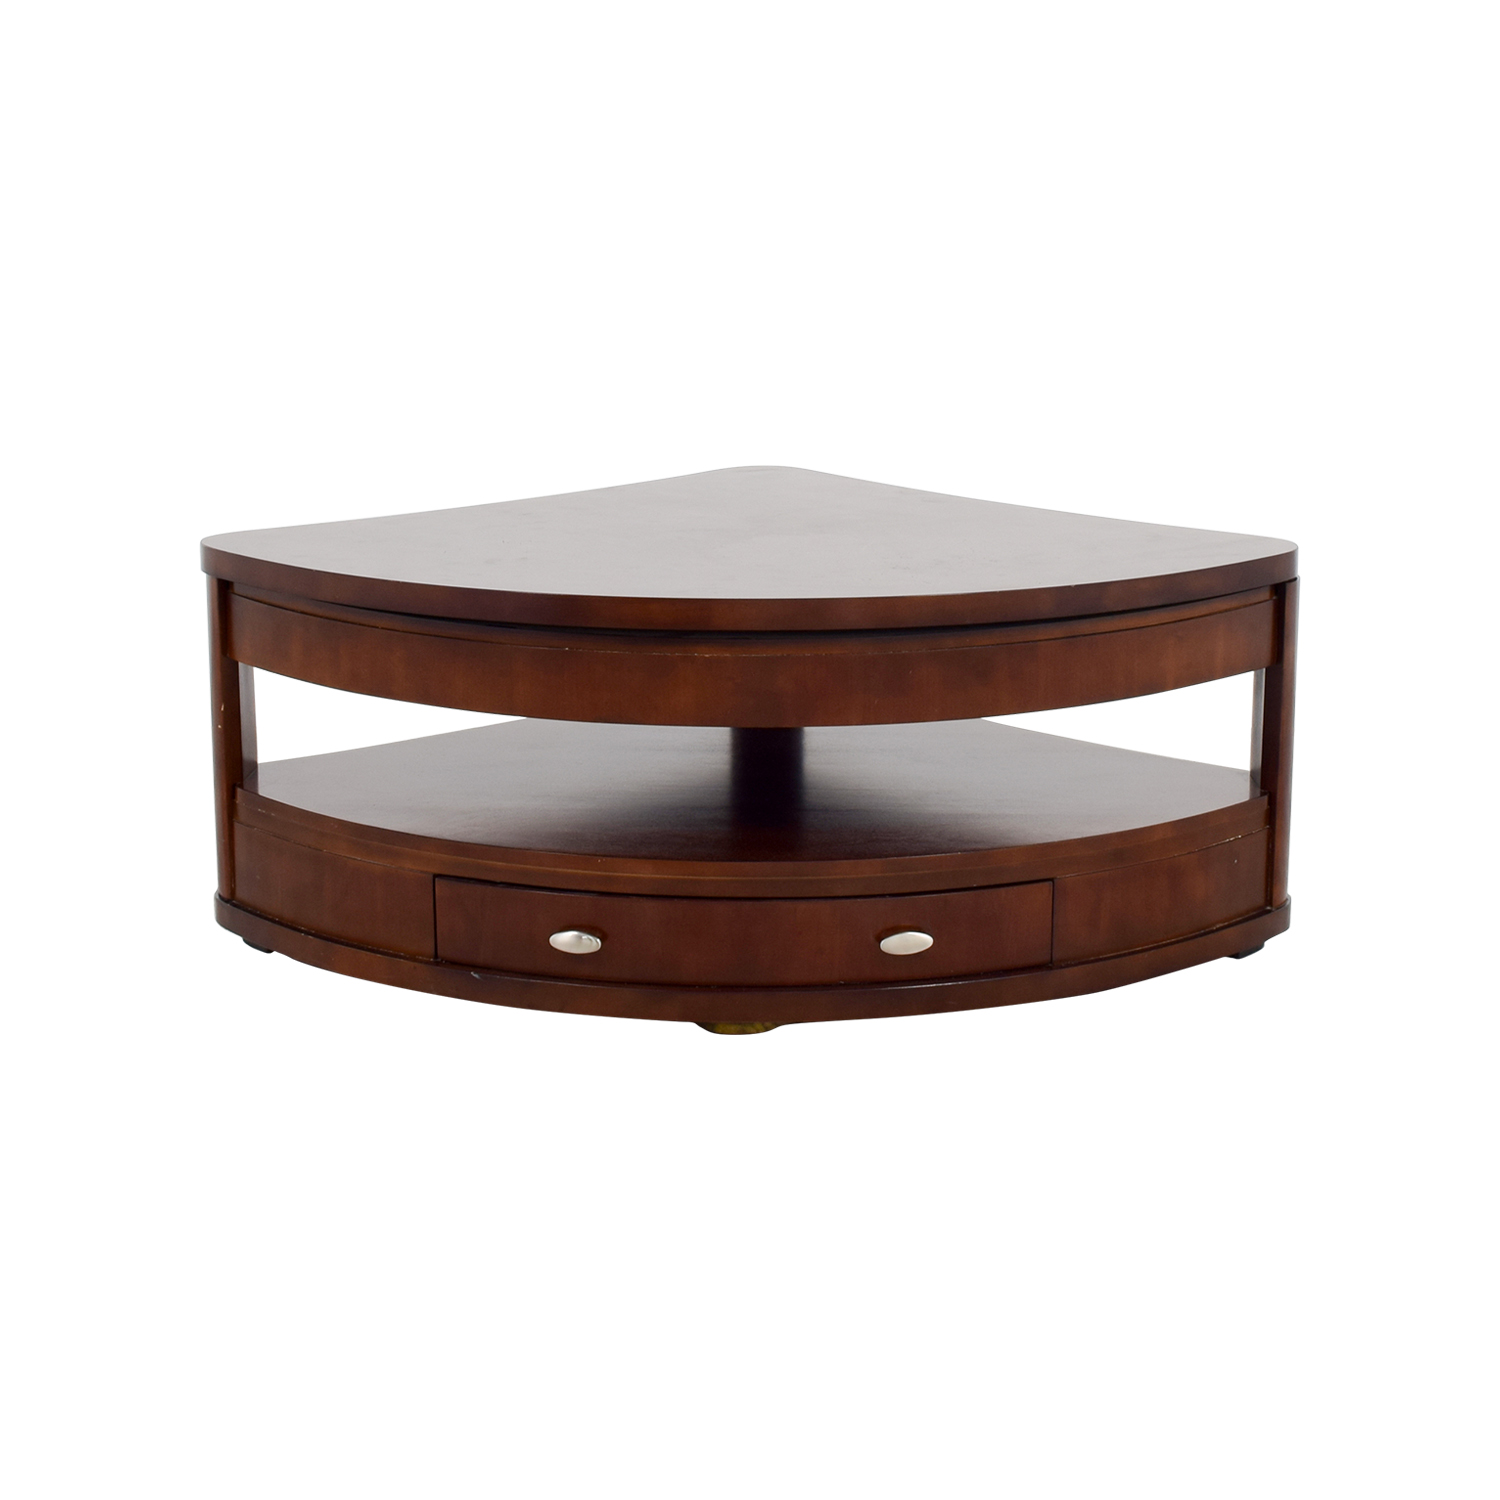 Triangular Rounded Lift Top Coffee Table Dimensions